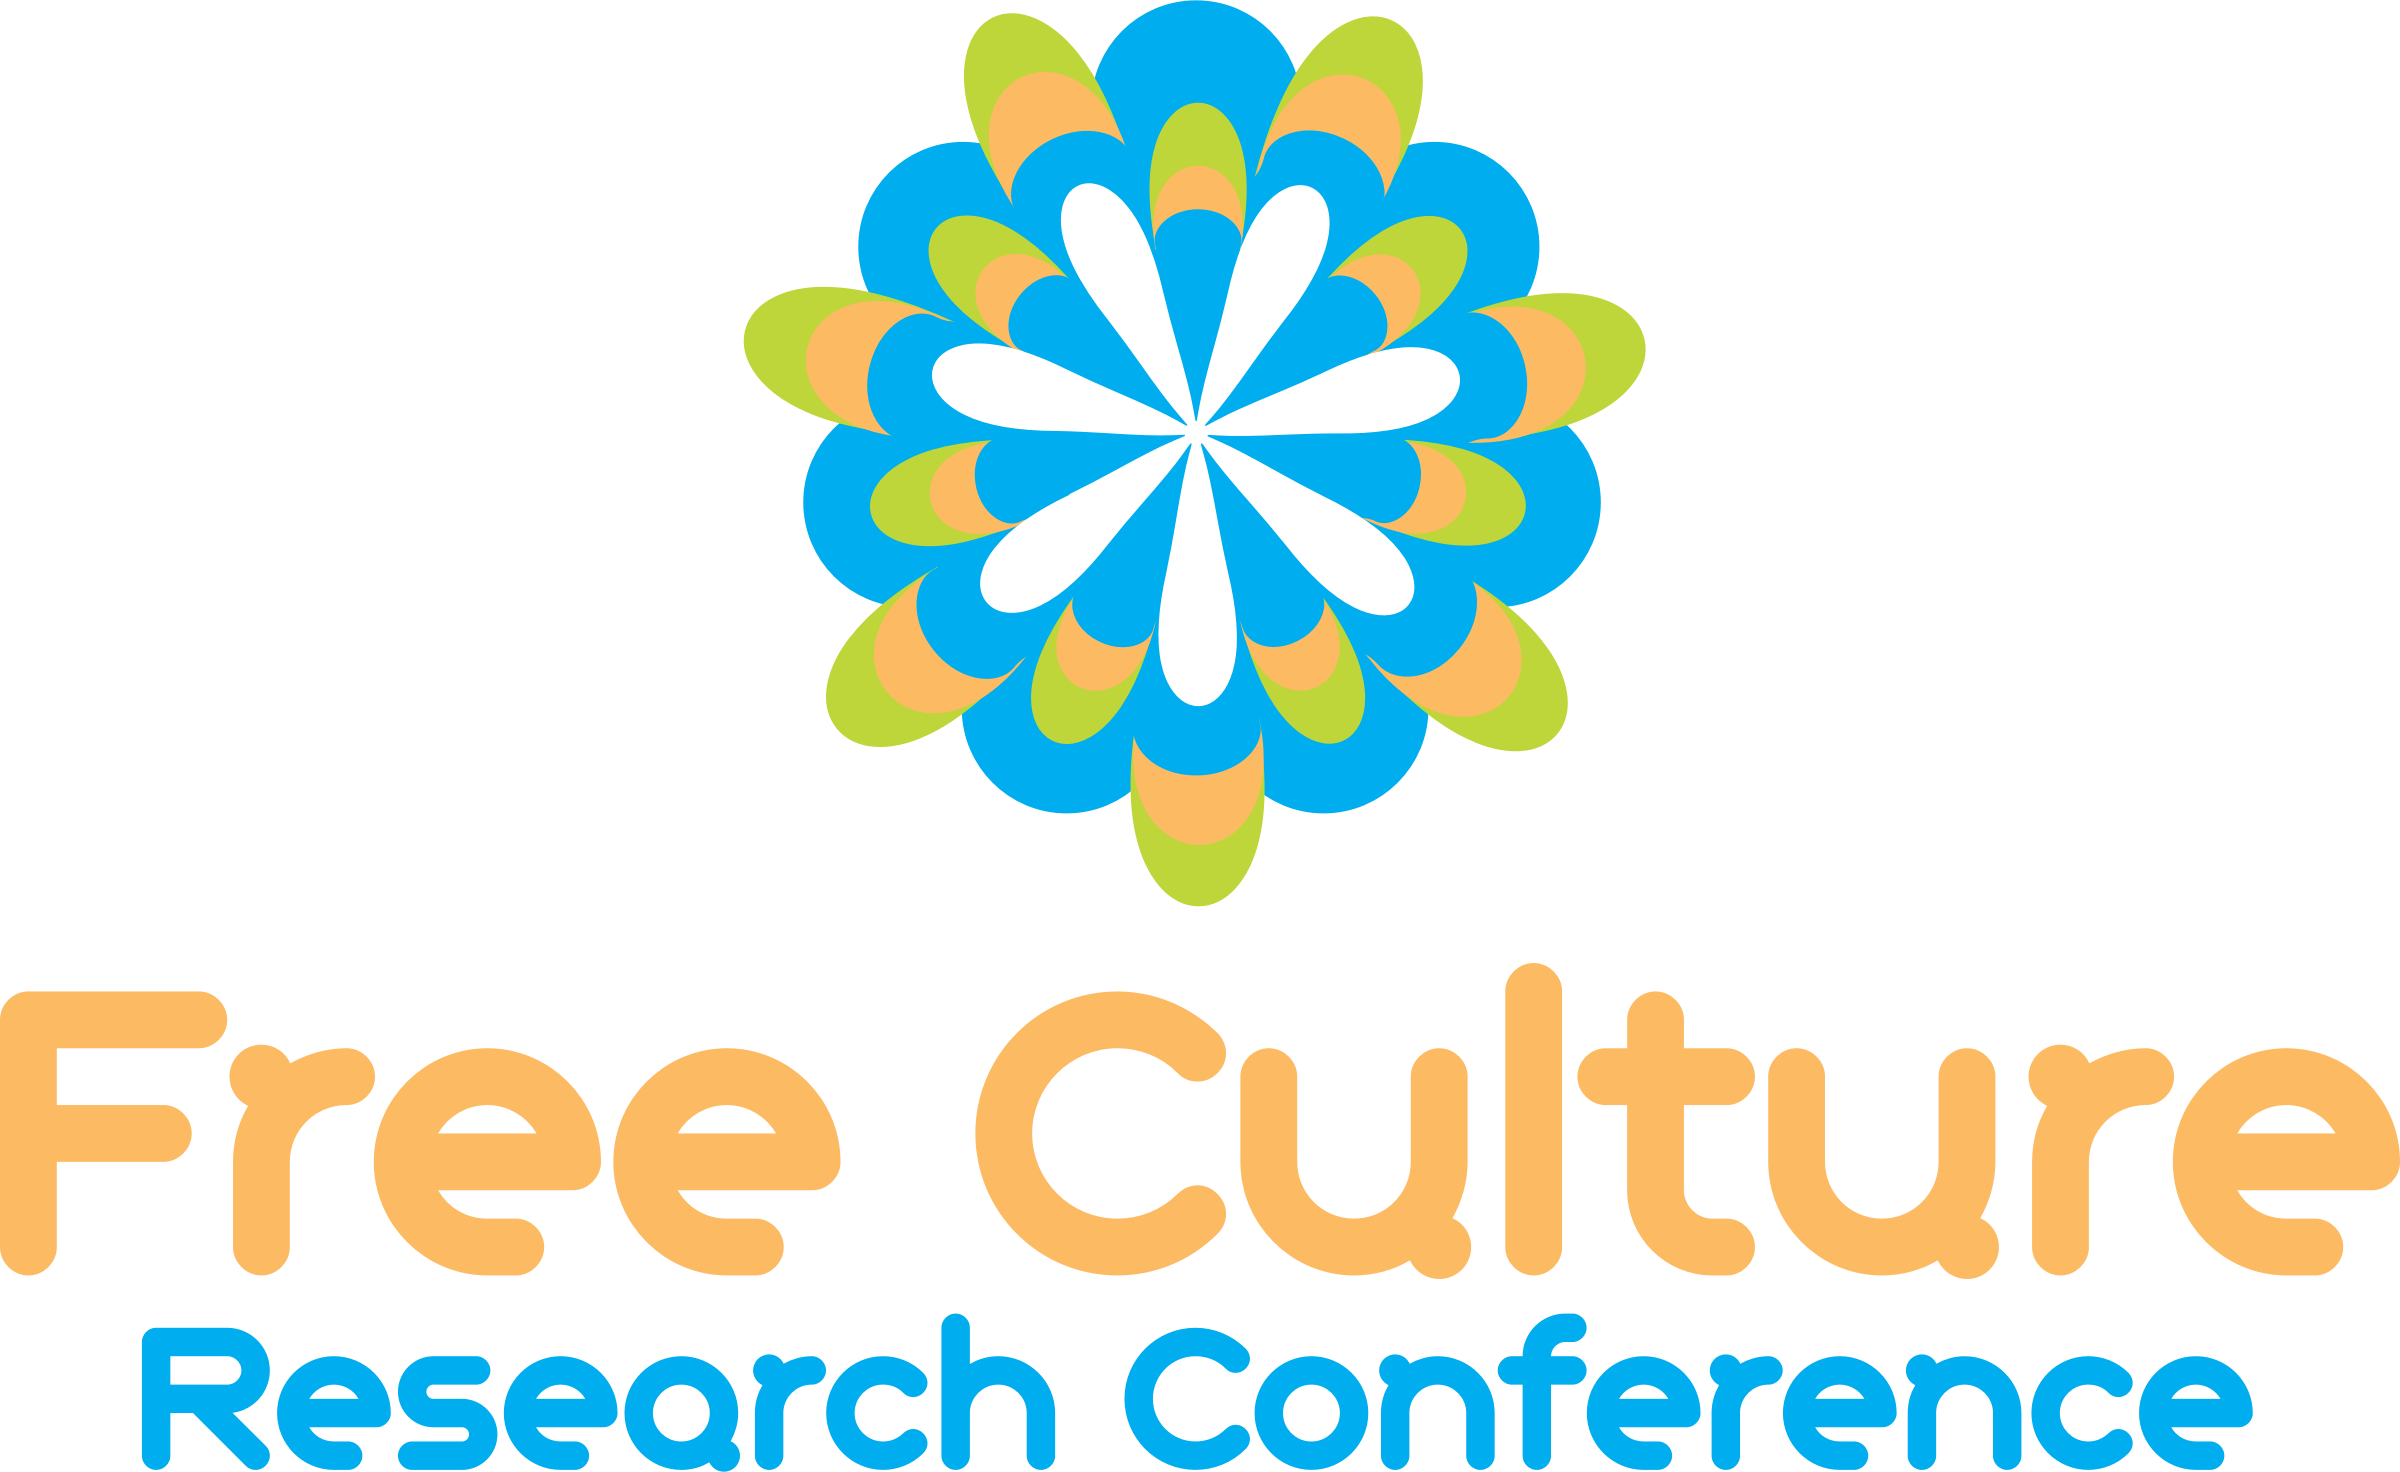 Free Culture Research Conference Logo by jgm104